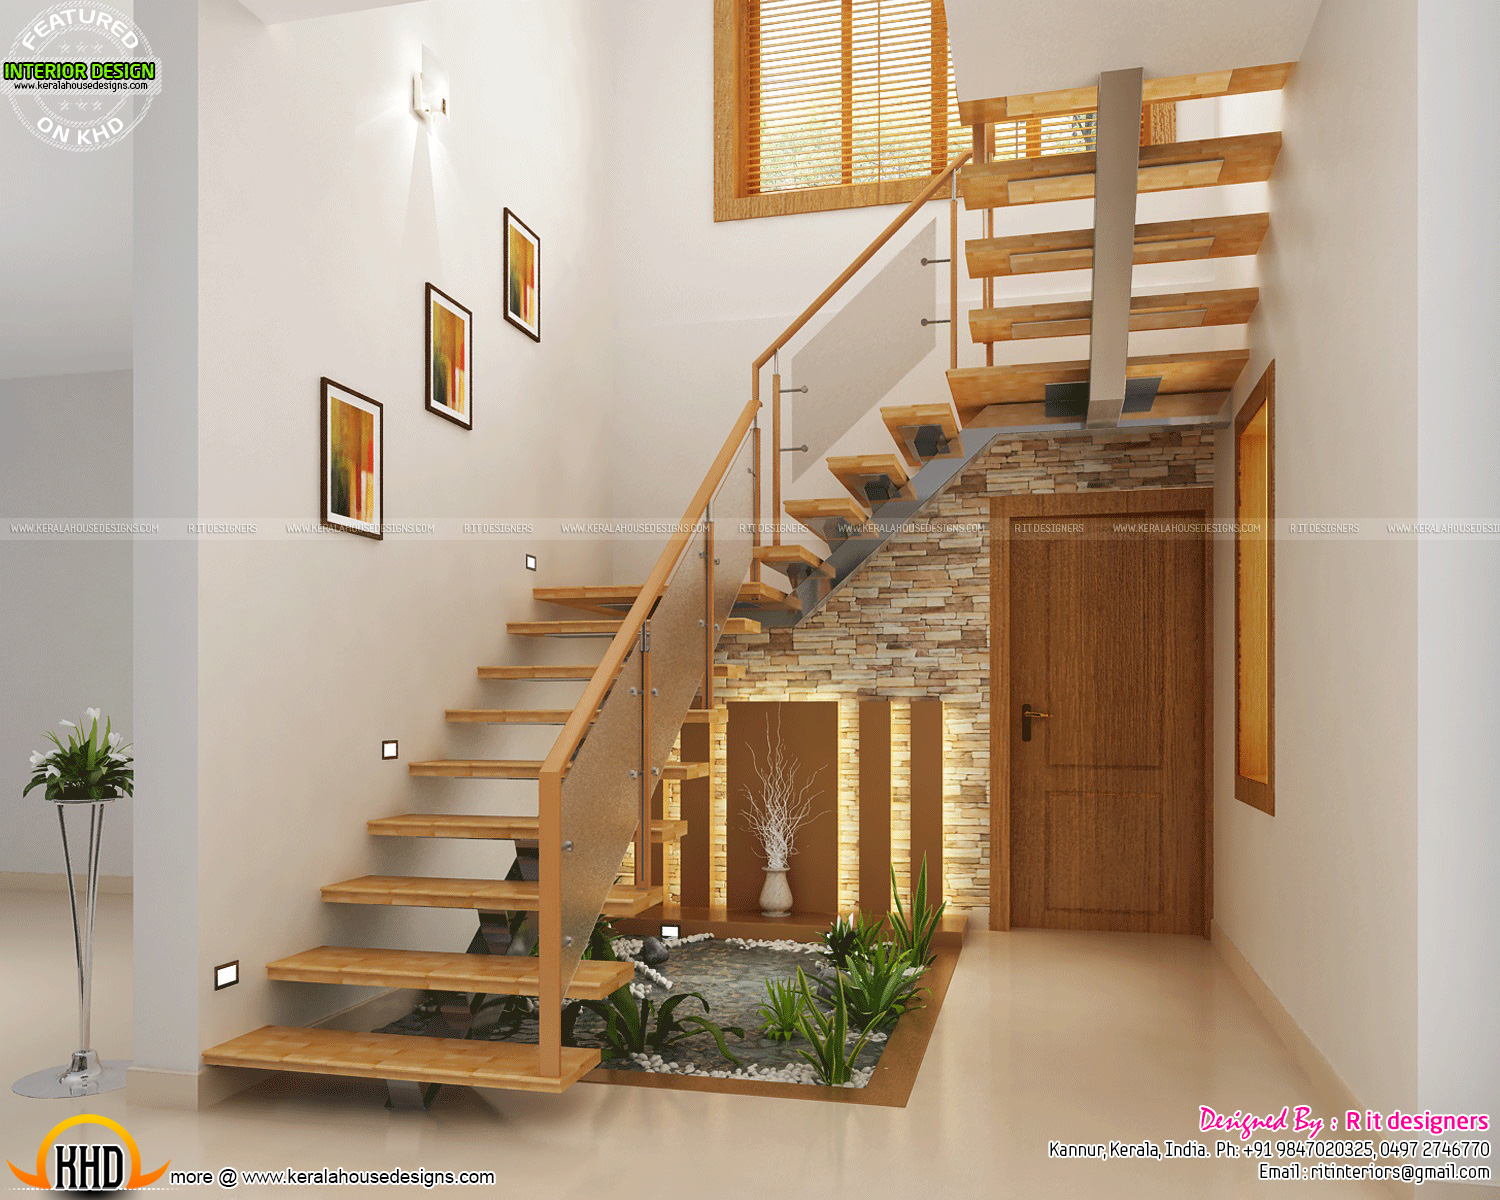 Staircase Designs For Small House Under Stair Design Wooden Stair Kitchen And Living